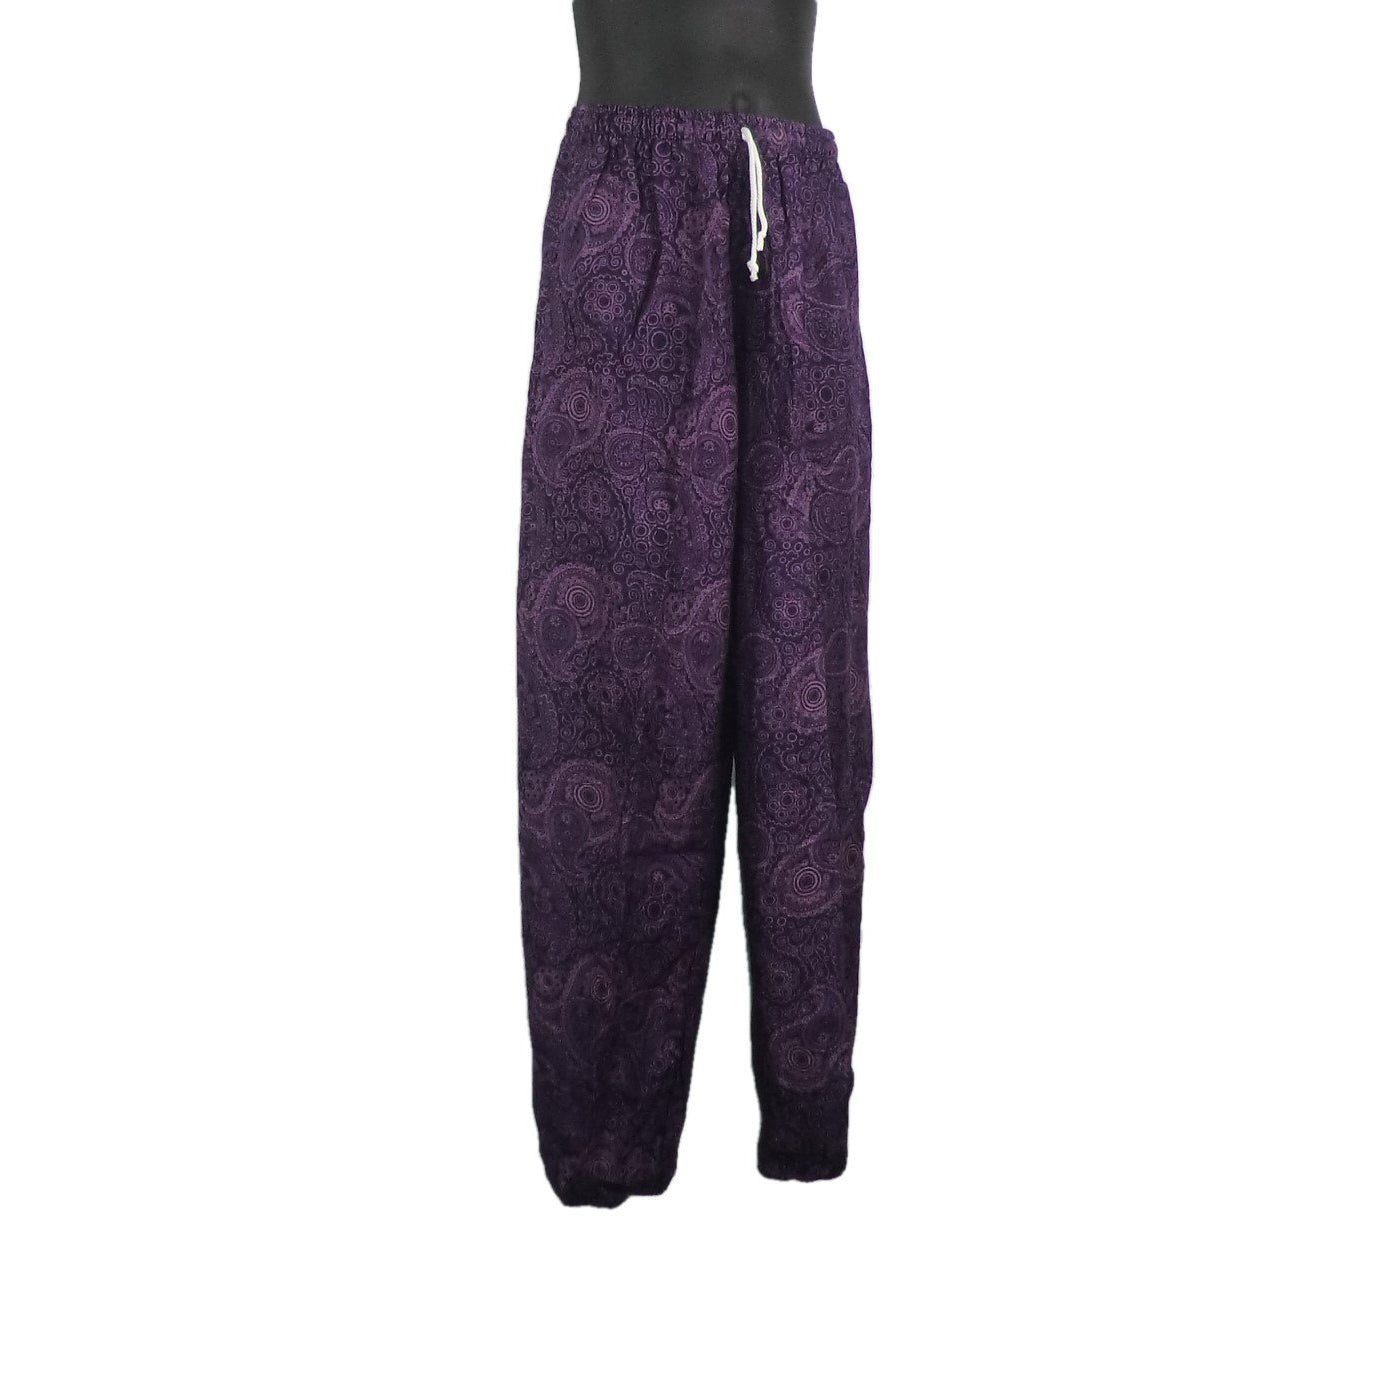 Purple/ Pink Trousers 8 - 10yrs - Matico